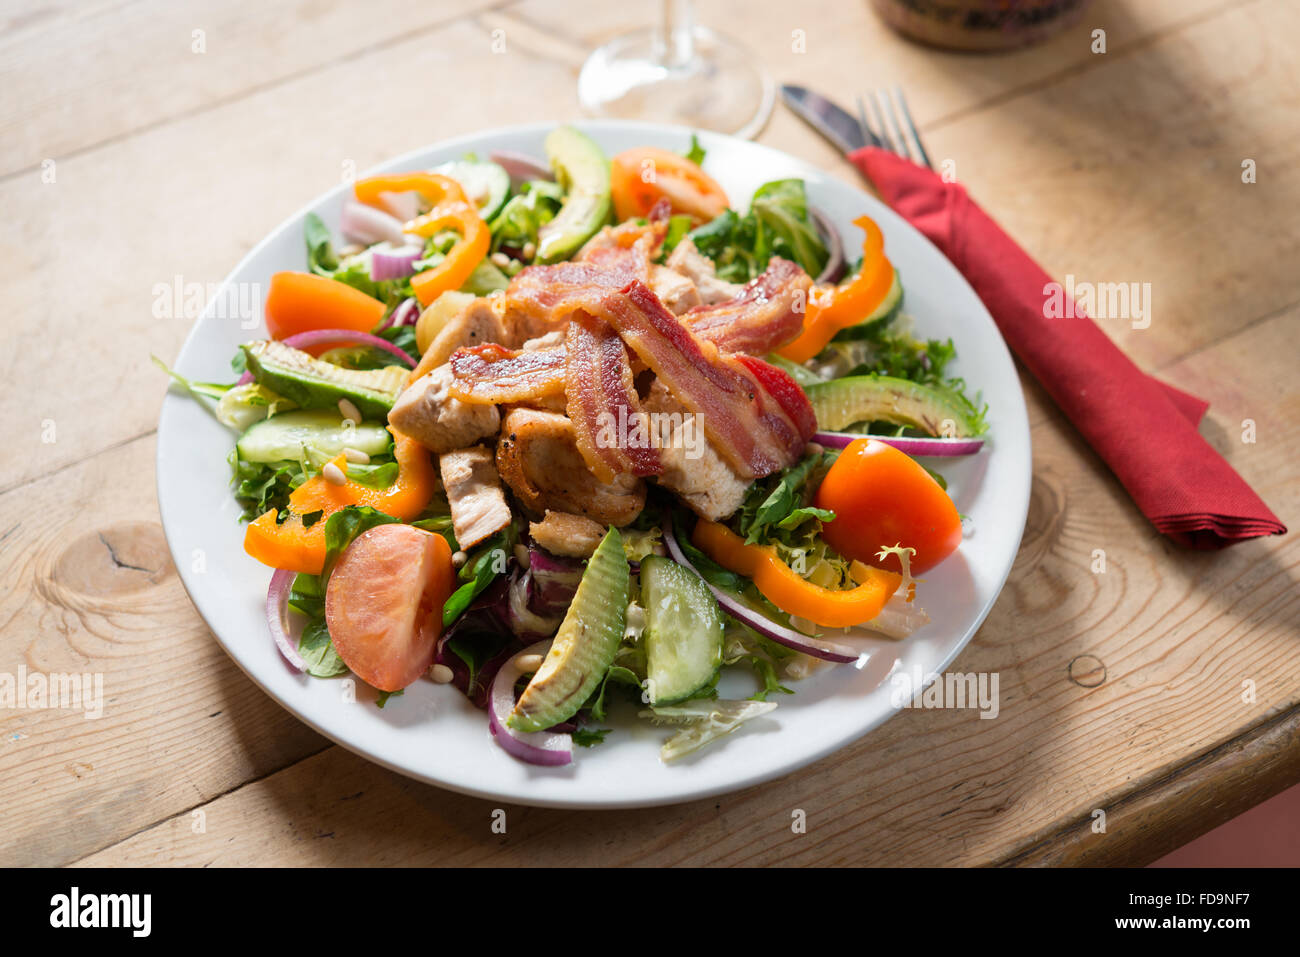 A bacon salad on a plate in a traditional English pub - Stock Image